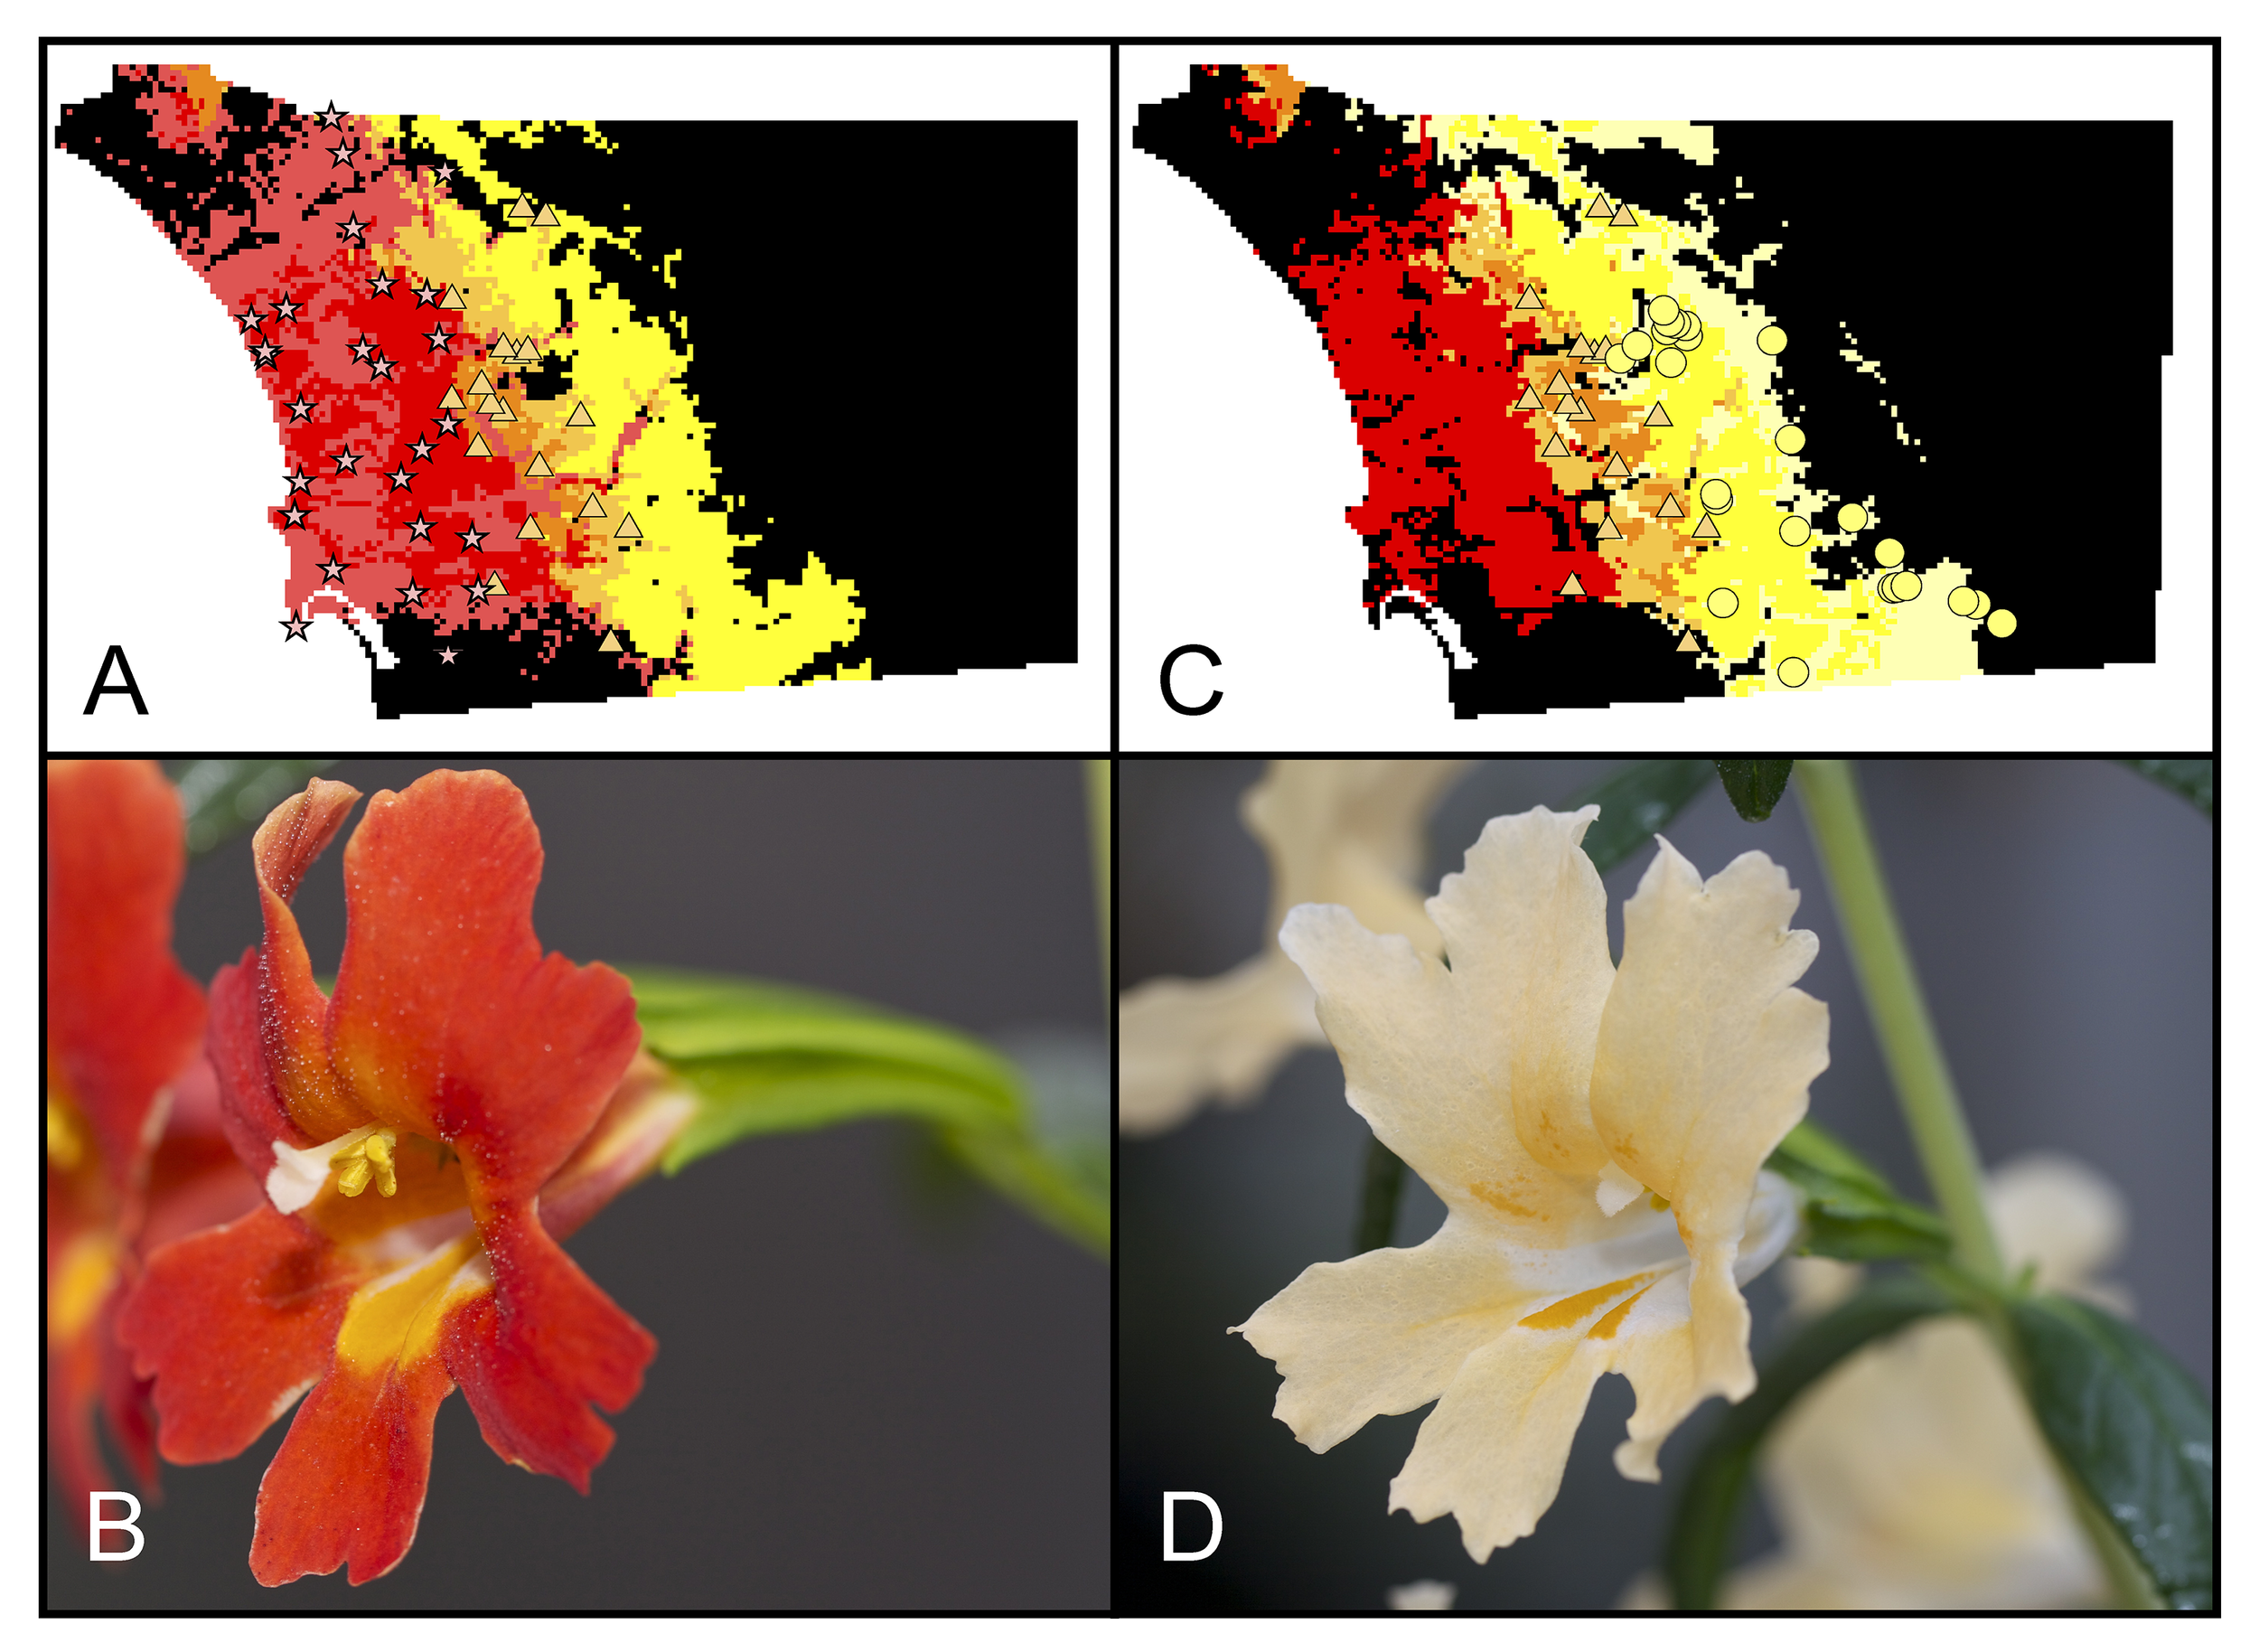 M. aurantiacus  is reproductively isolated by both habitat and pollinators. The red-flowered ecotype (panel B) is pollinated primarily by hummingbirds, while the yellow ecotype is pollinated by hawkmoths (D). These two taxa are non-randomly distributed across geographic space, with the red ecotype found in coastal regions of southern California (A), while the yellow-flowered ecotype is found further inland (C).